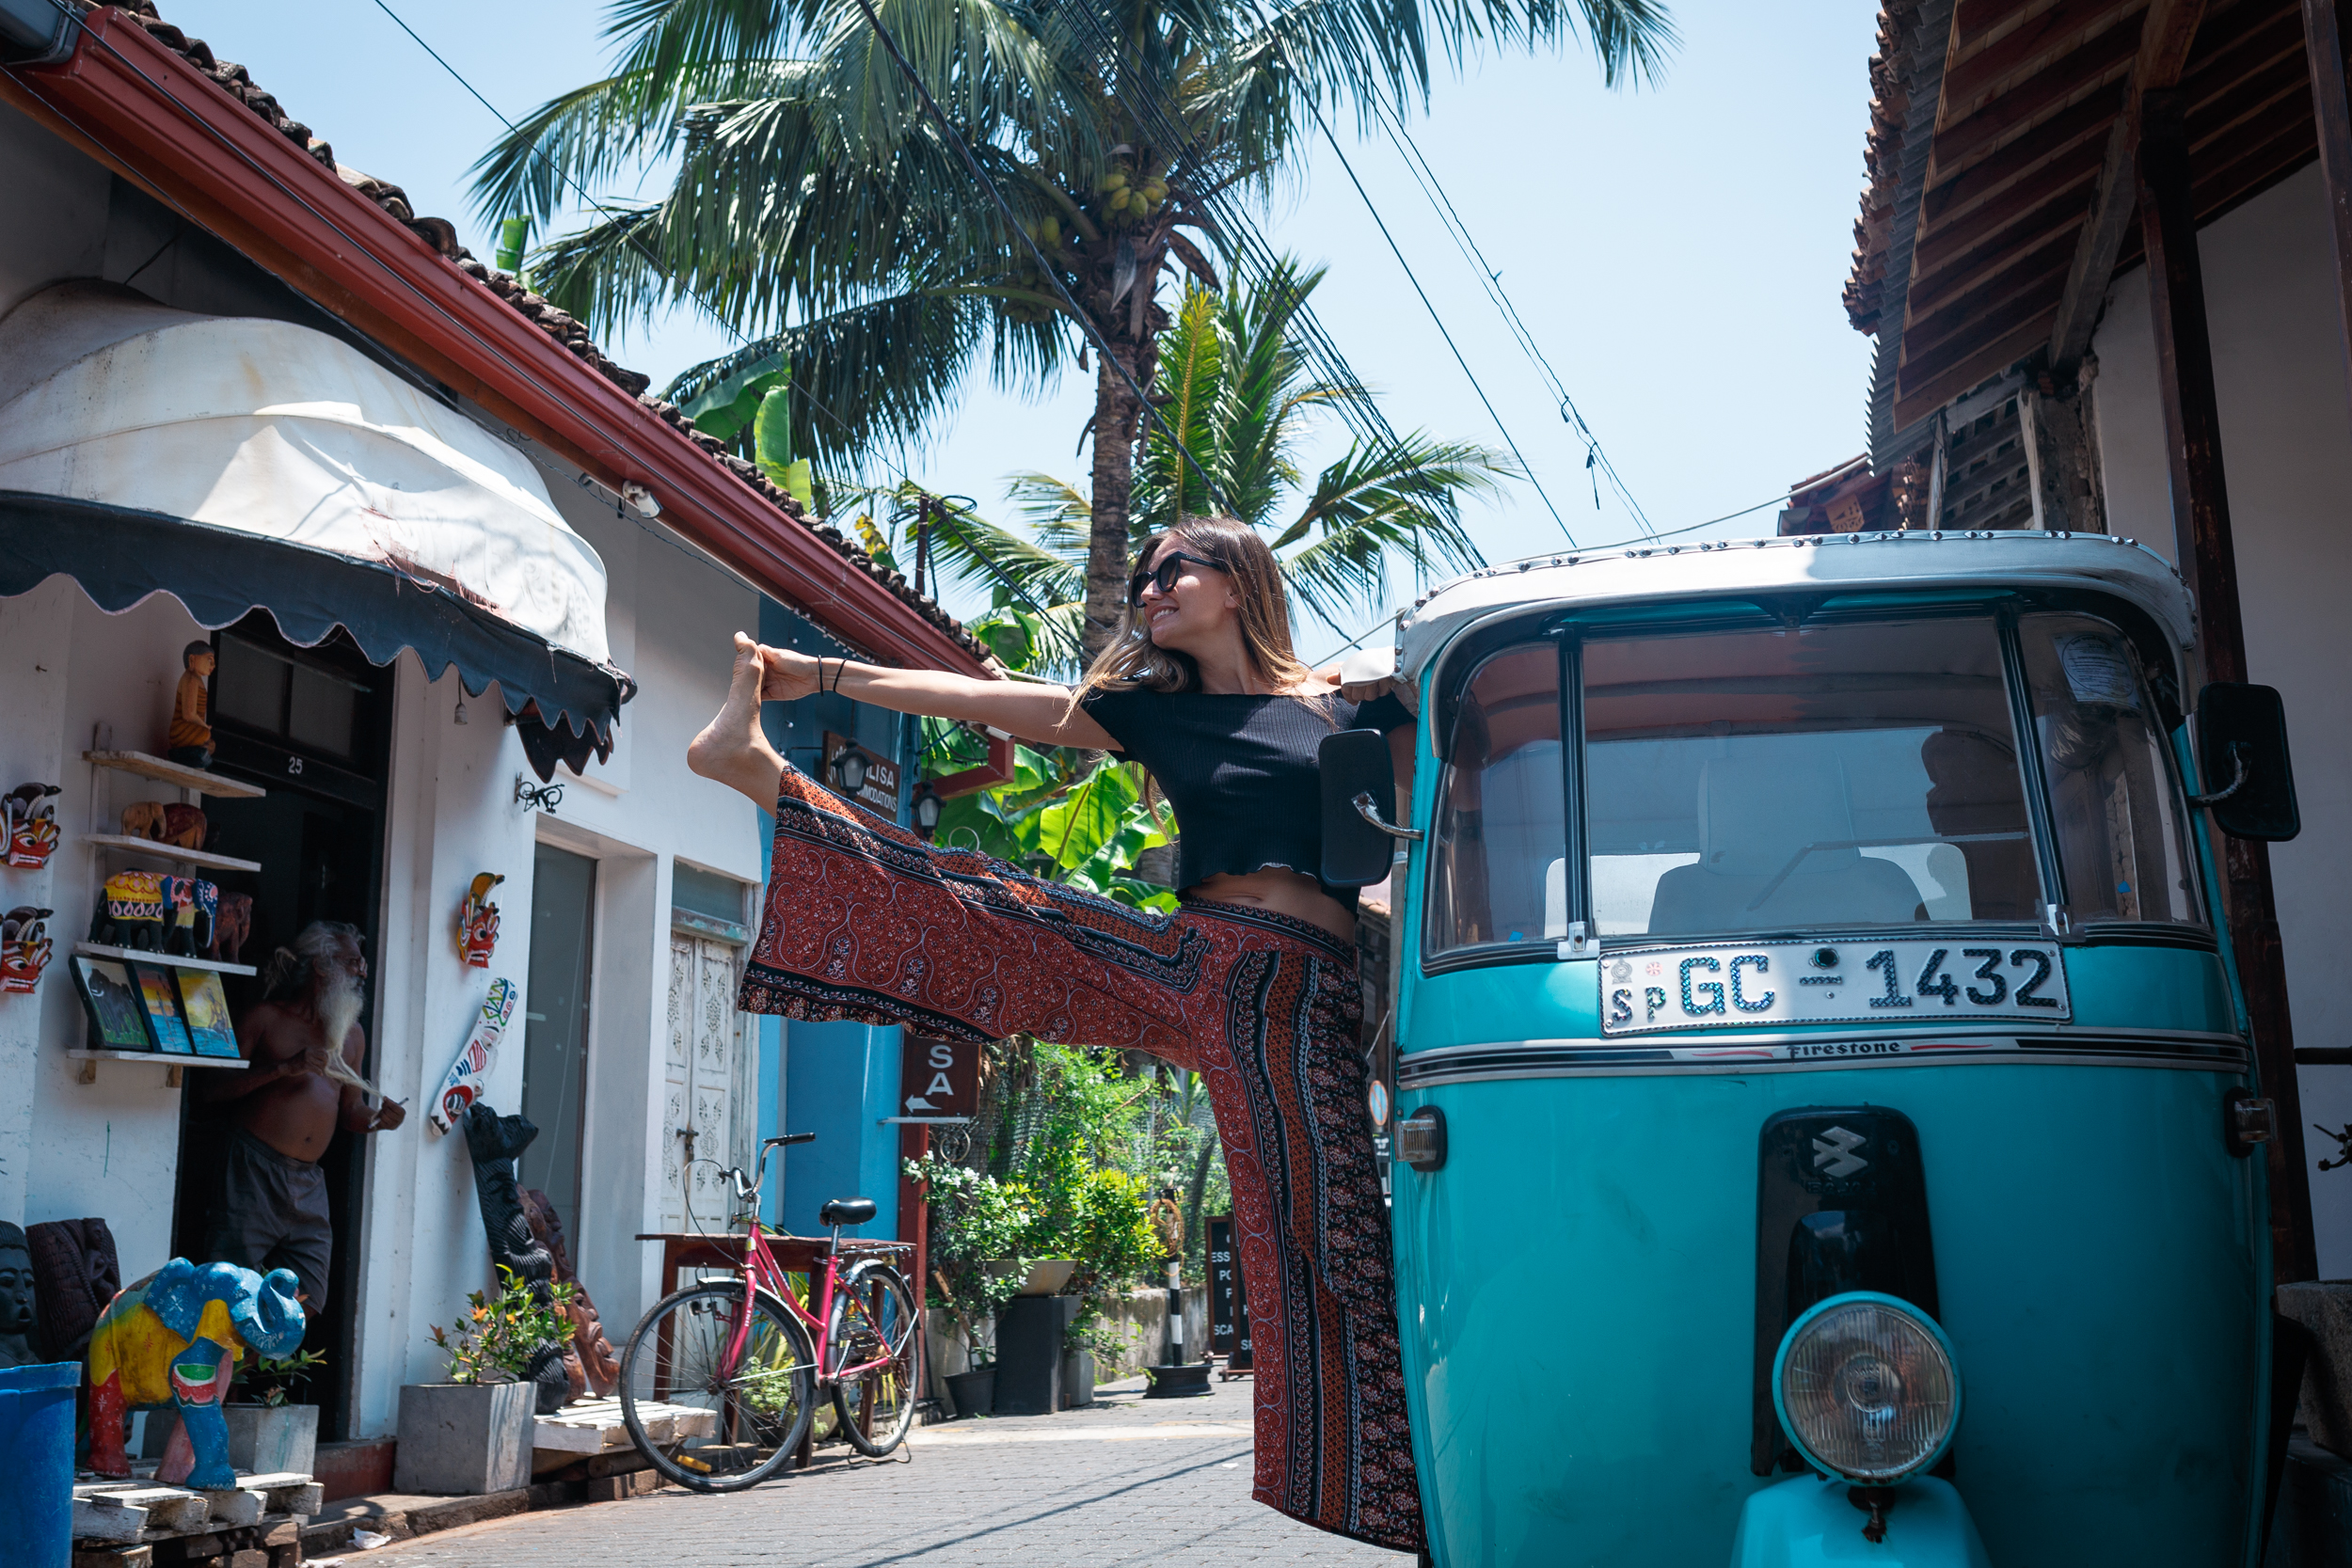 Adzenture co-founder, Daniela, striking a pose out of a tuk-tuk at Galle Fort.